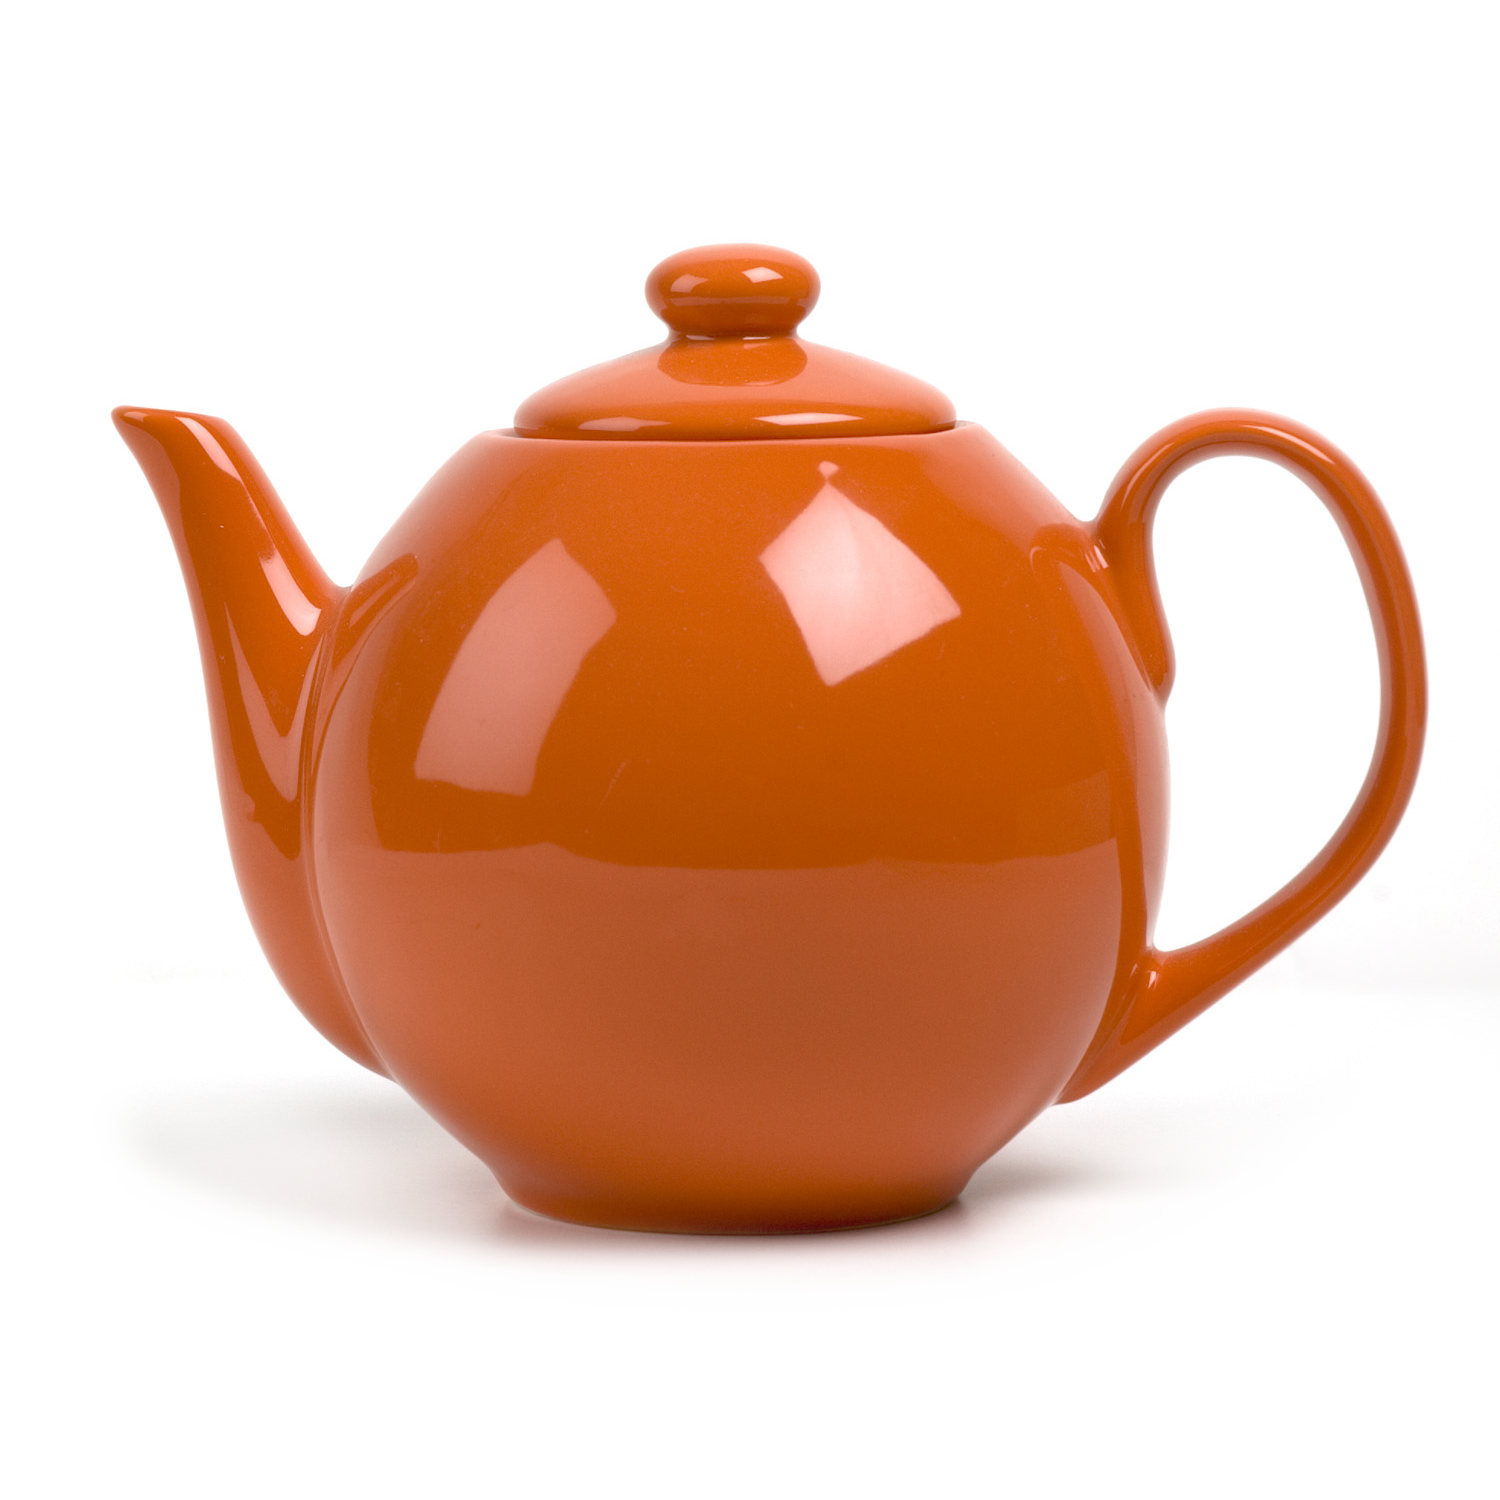 OmniWare Teaz Orange Stoneware Lillkin 34 Ounce Teapot with Stainless Steel Mesh Infuser